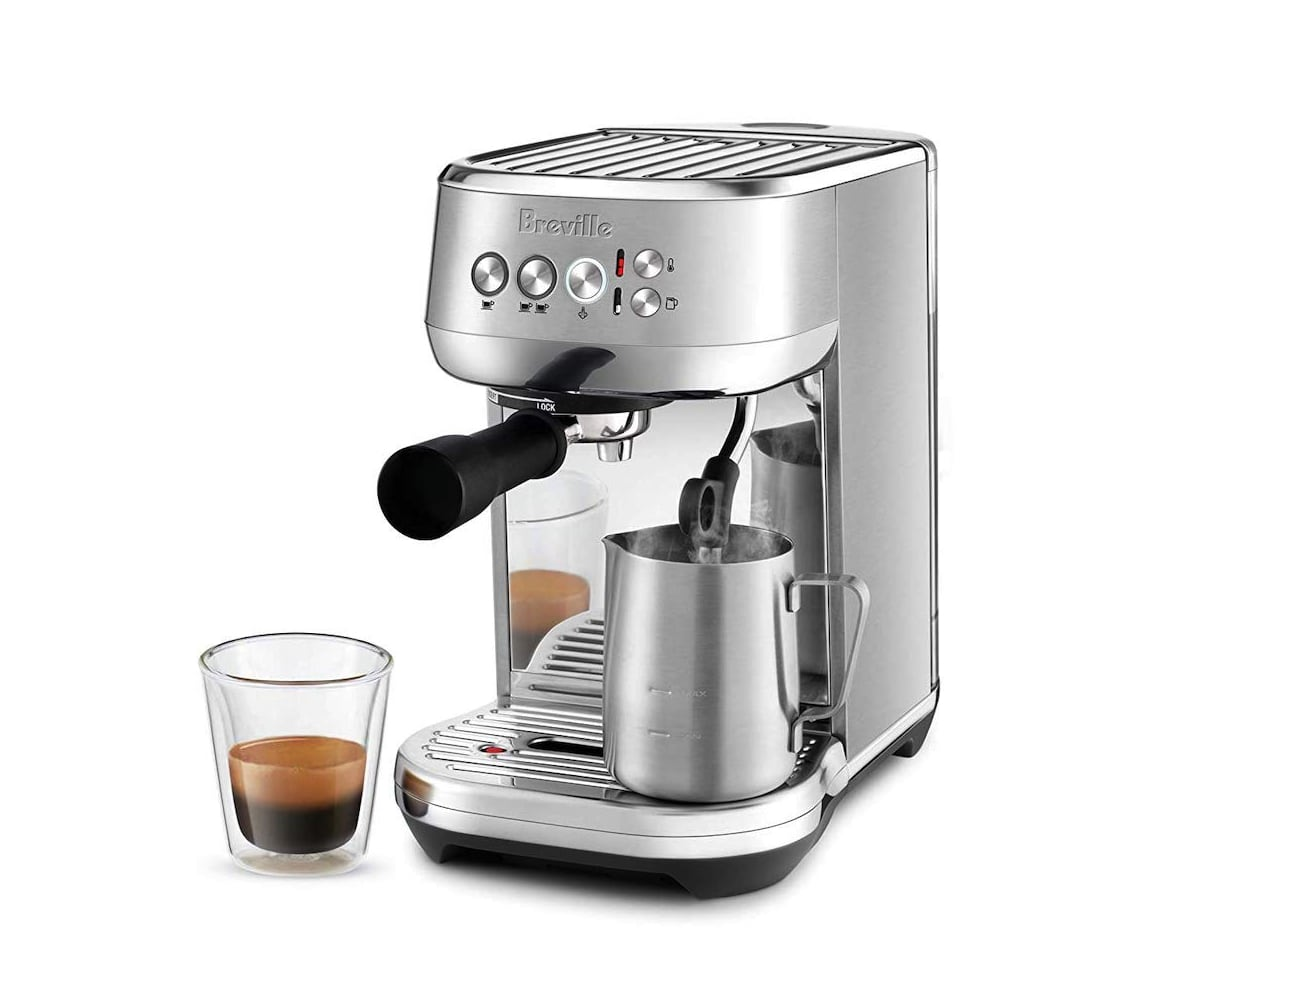 Breville Coffee Machine Manual Compact Cafe